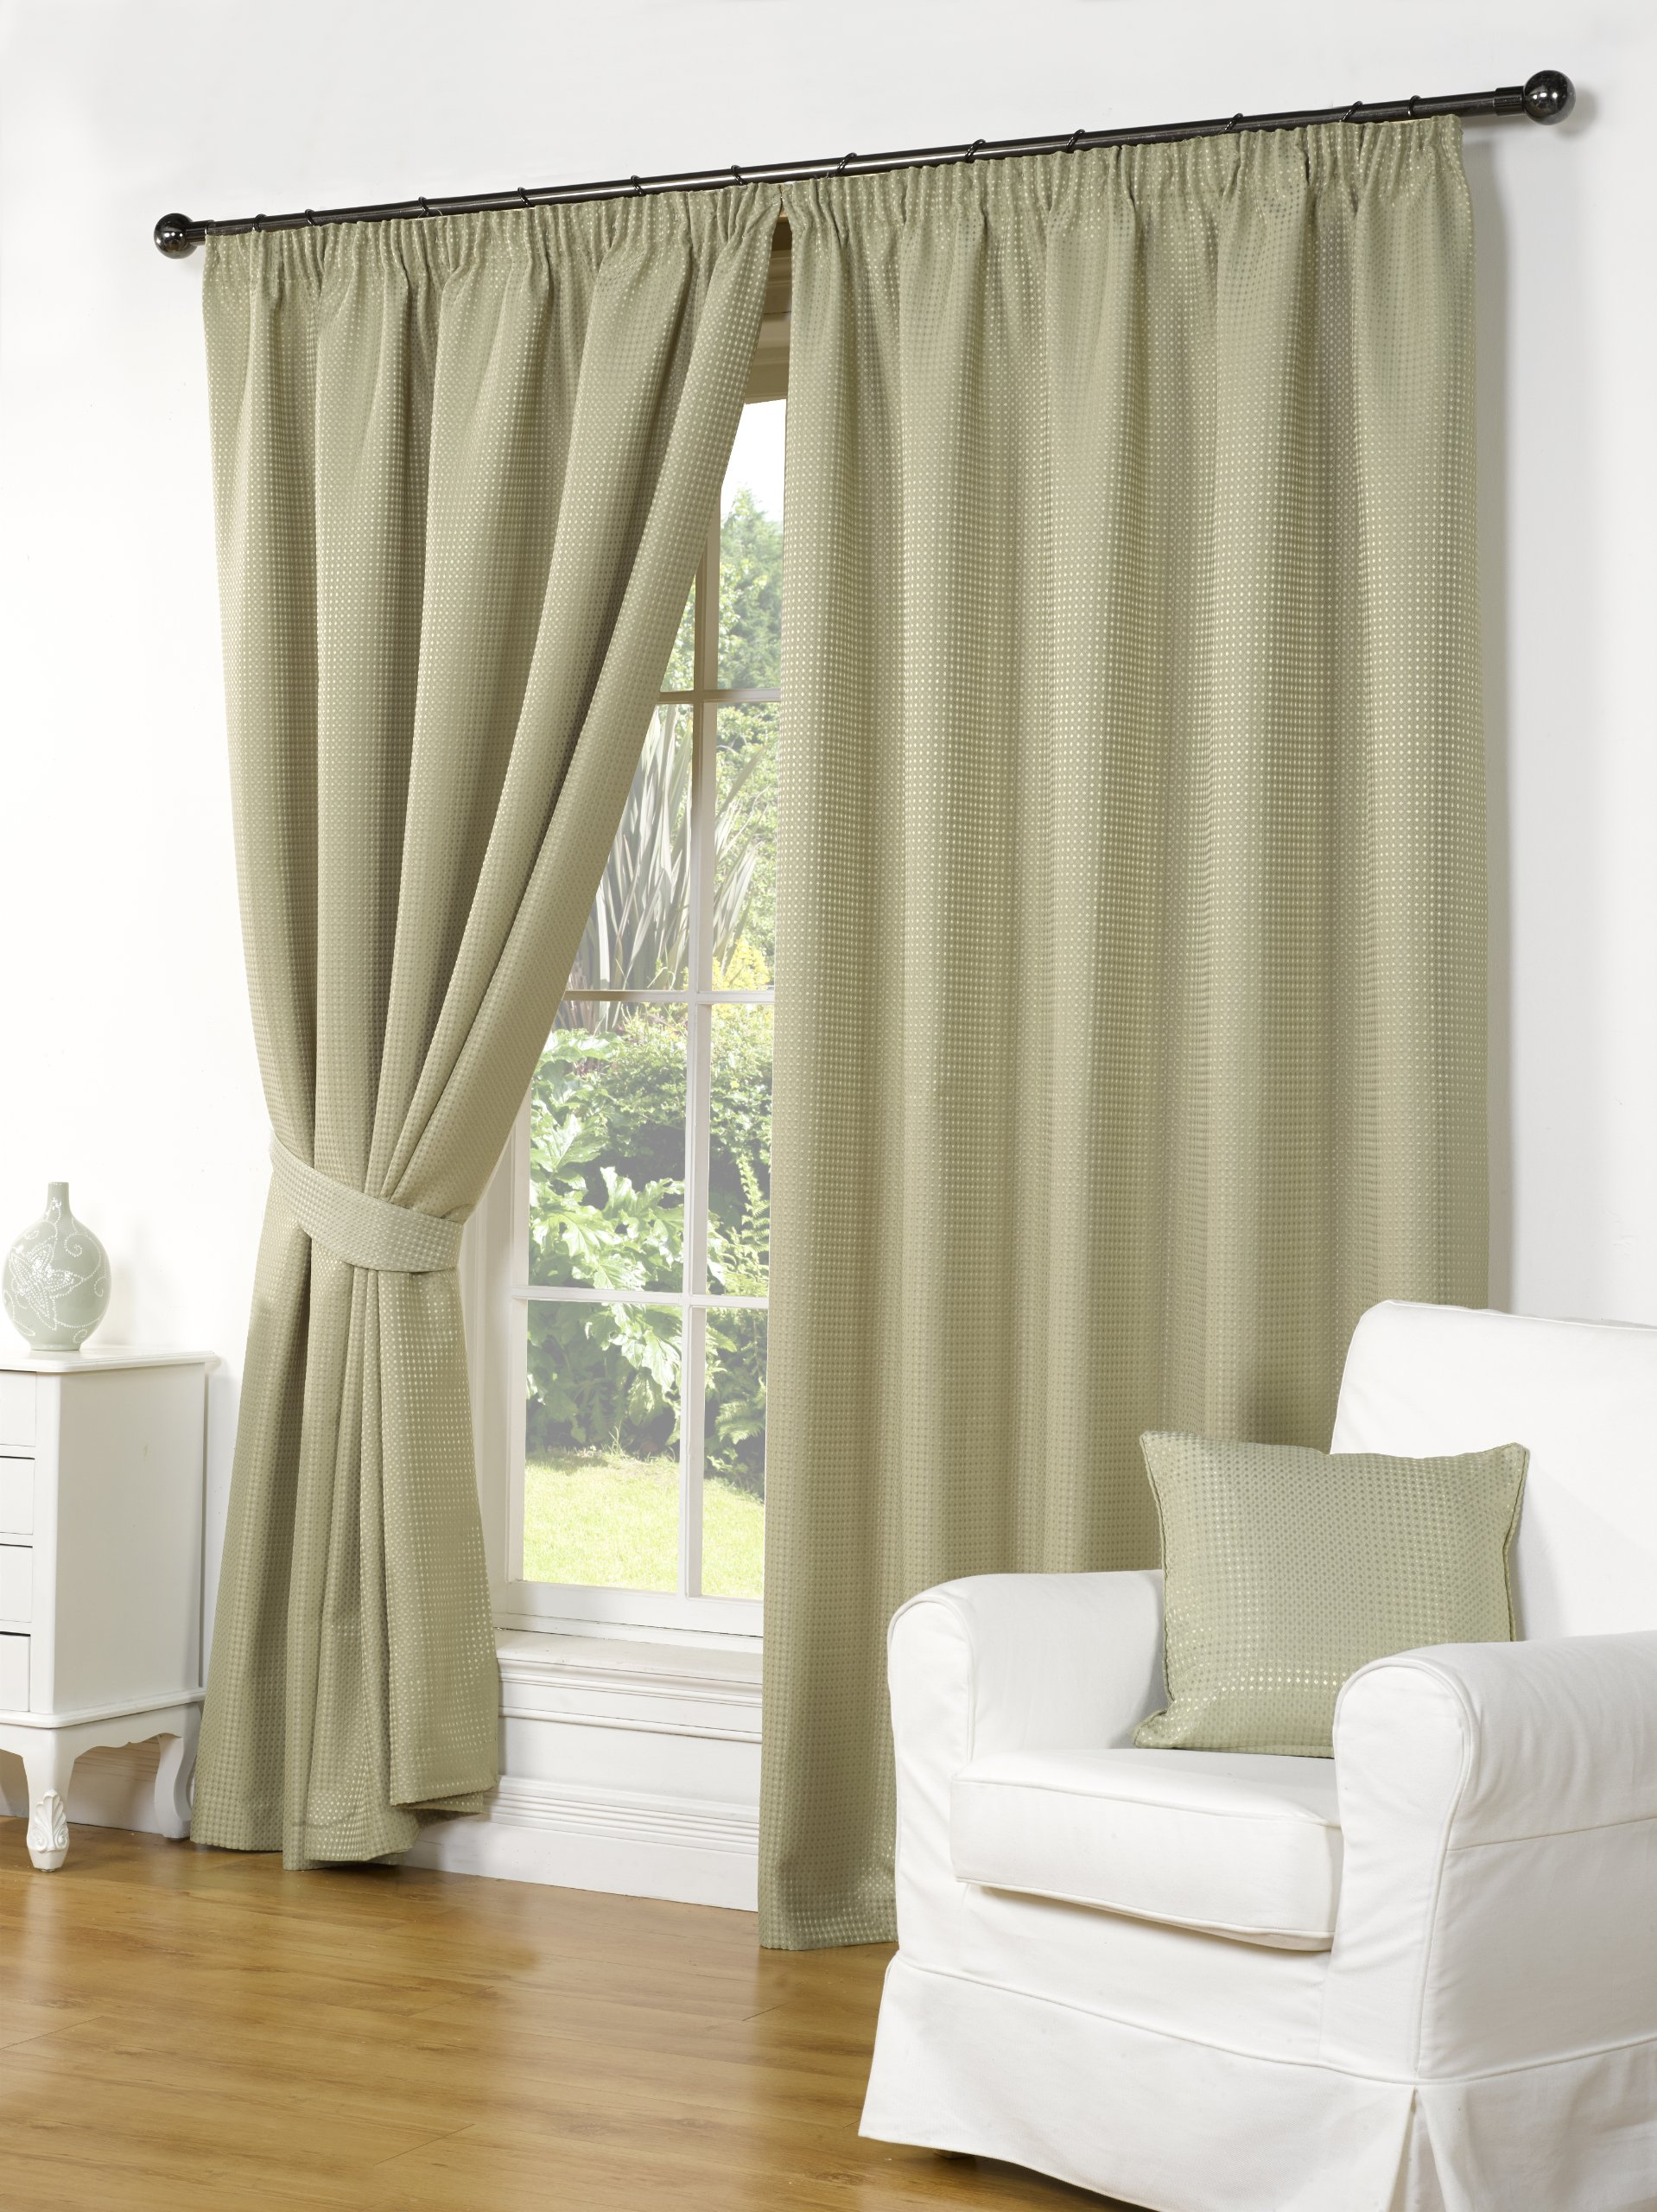 ELEGANT STYLISH SAGE GREEN WAFFLE FULLY LINED PENCIL PLEAT CURTAINS 66 X 90